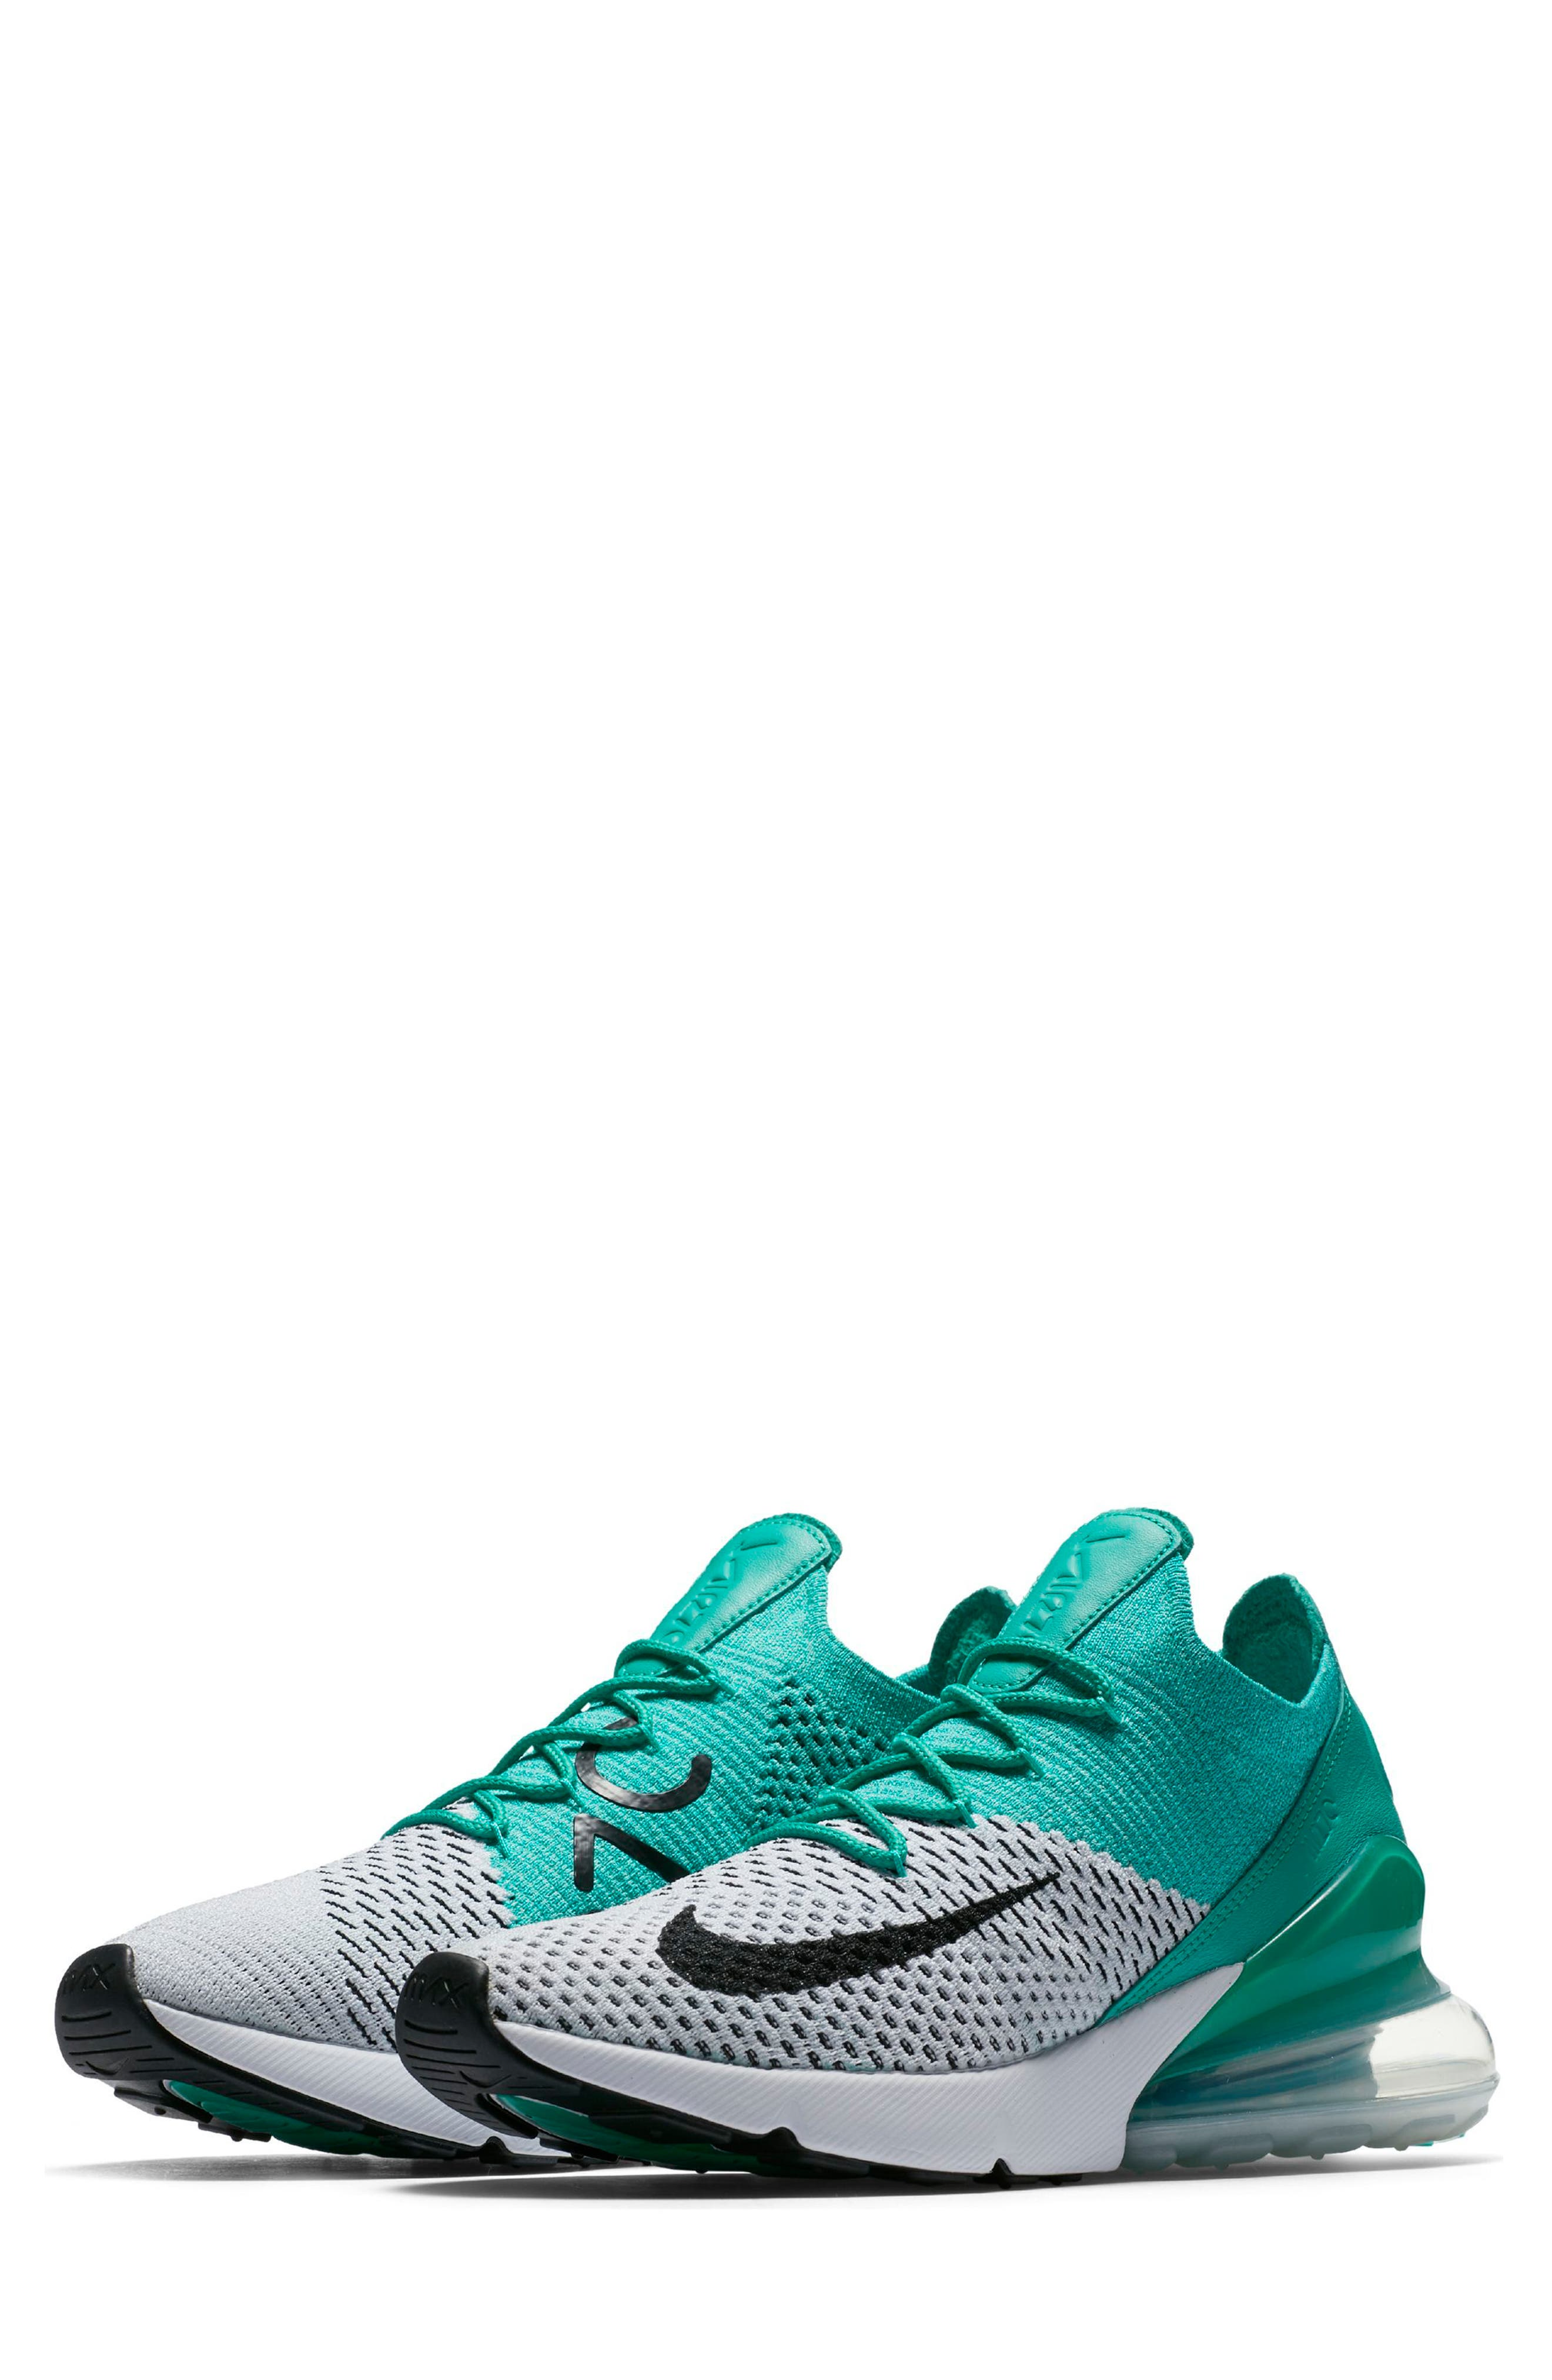 Air Max 270 Flyknit Sneaker,                             Main thumbnail 1, color,                             Emerald/ Black/ Pure Platinum